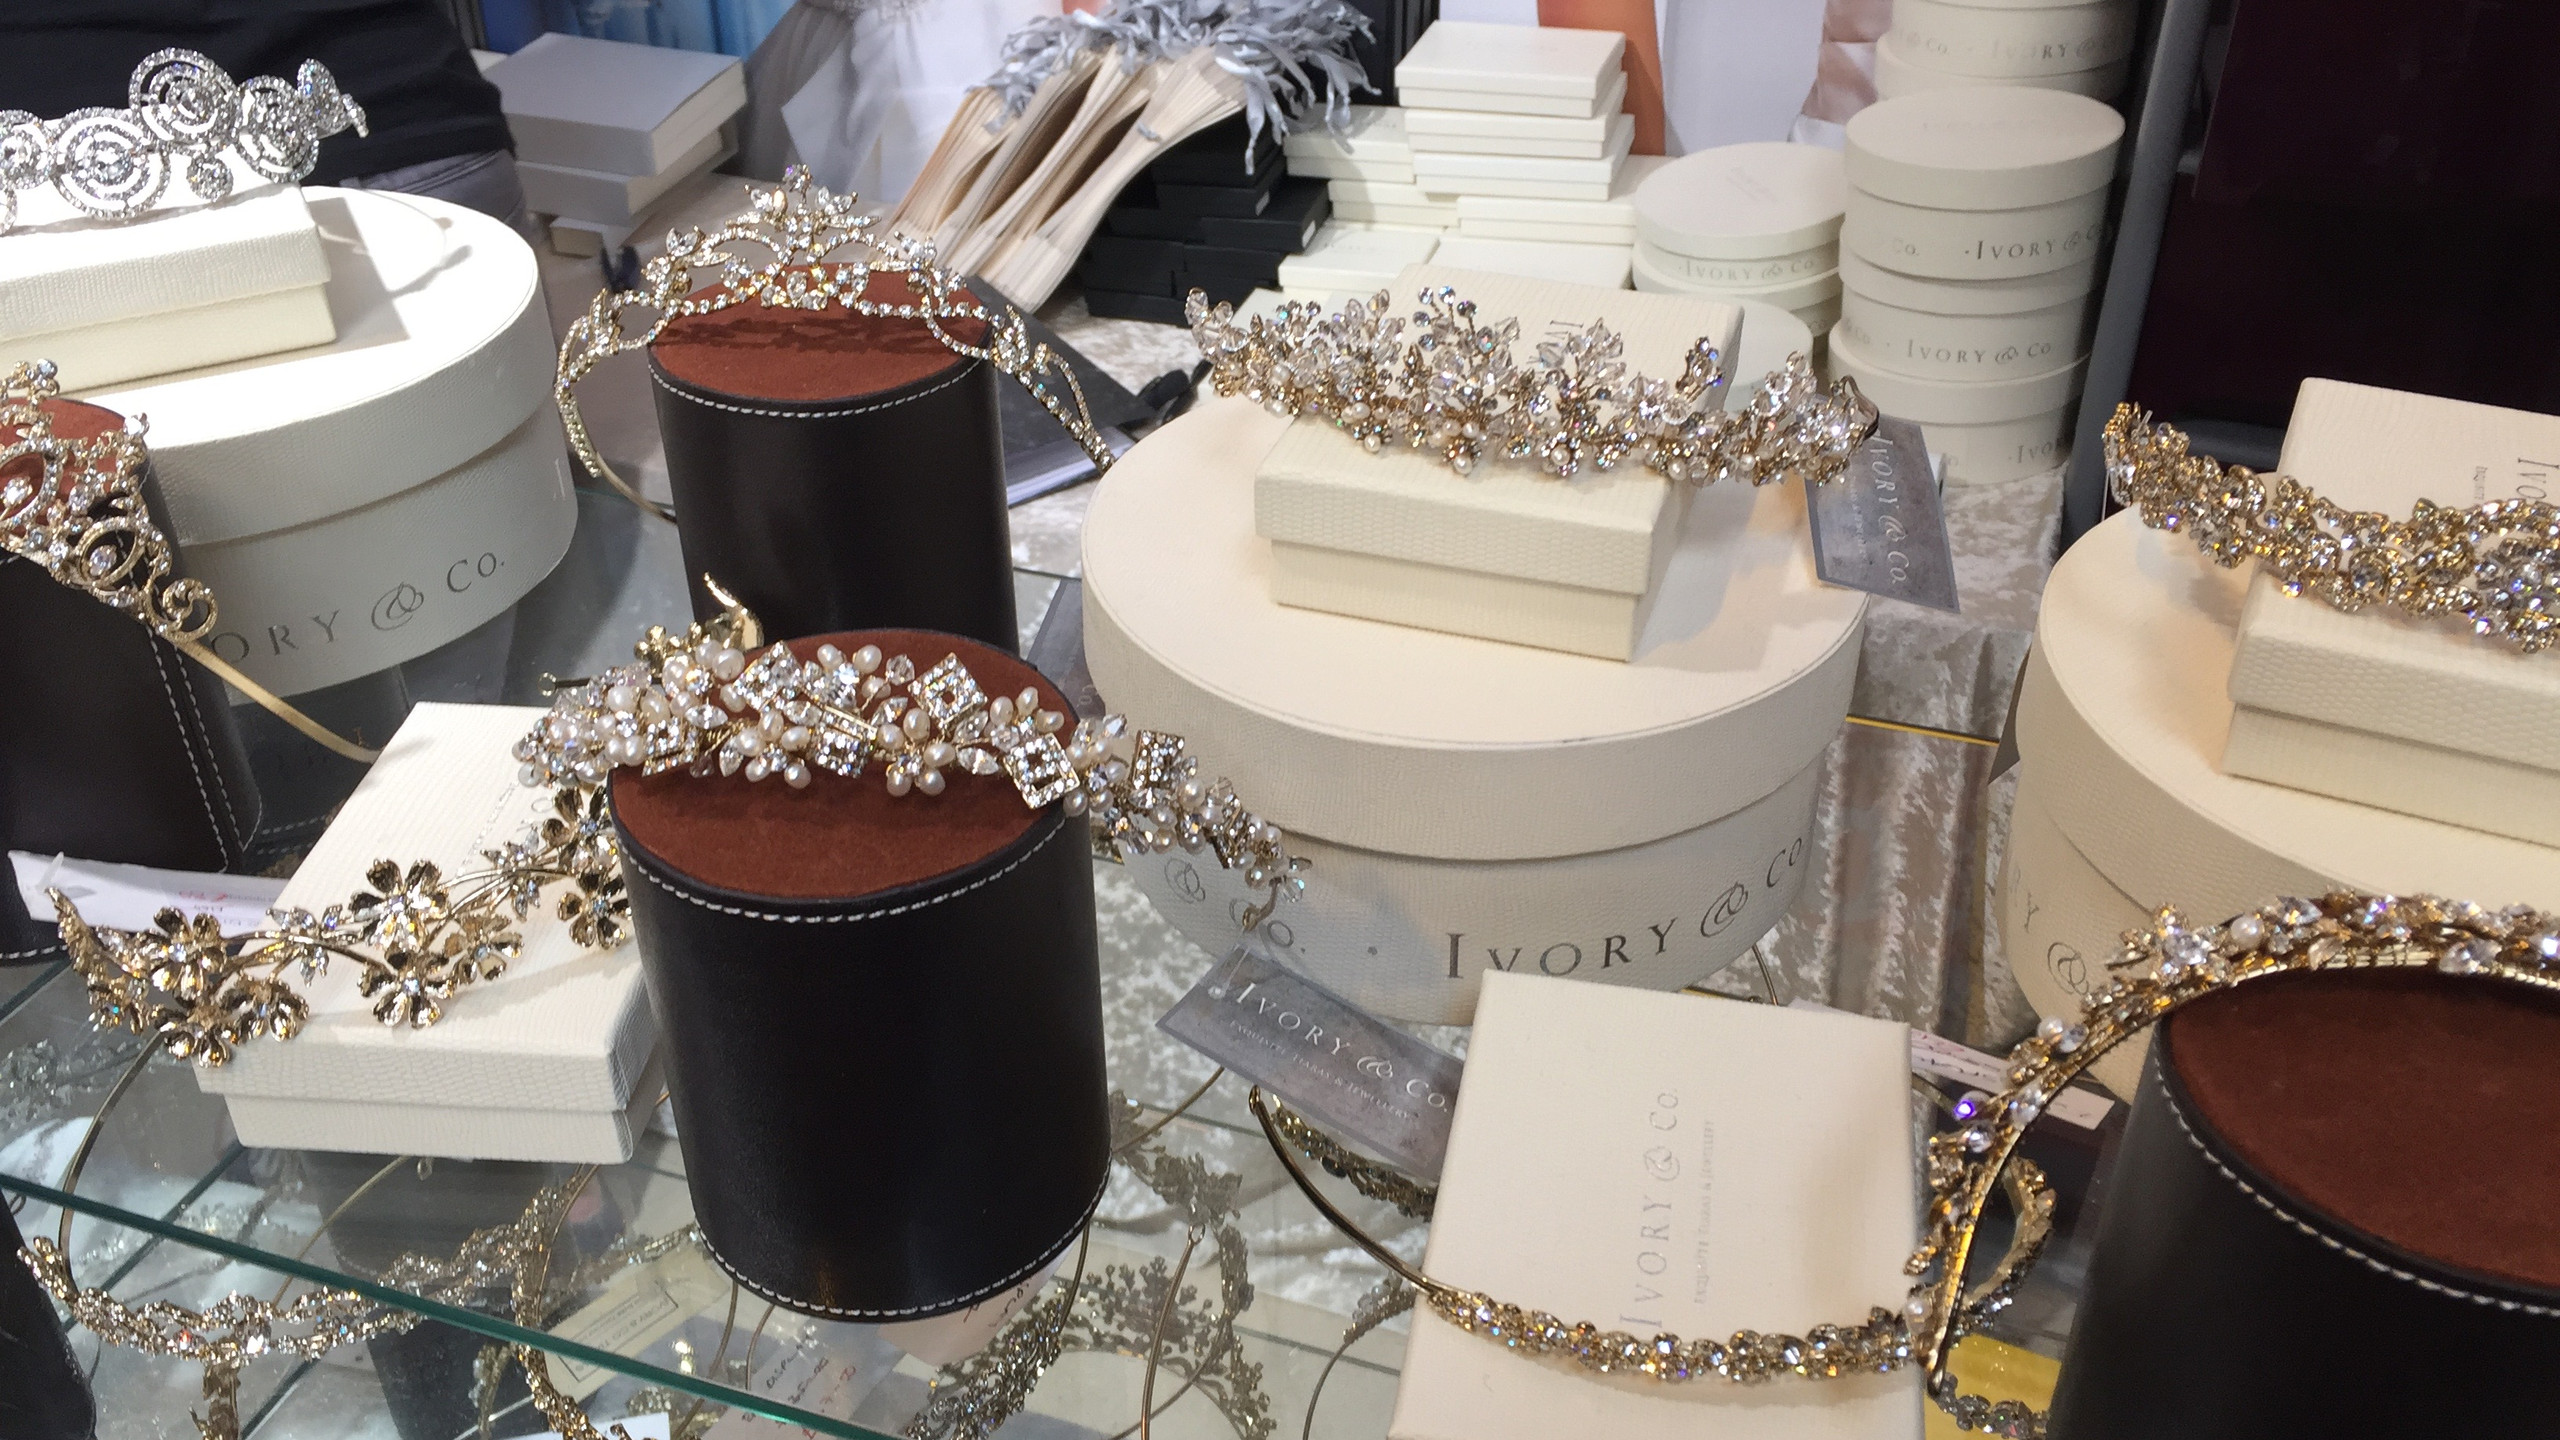 I'm partial to a bit of sparkle from Ivory and Co